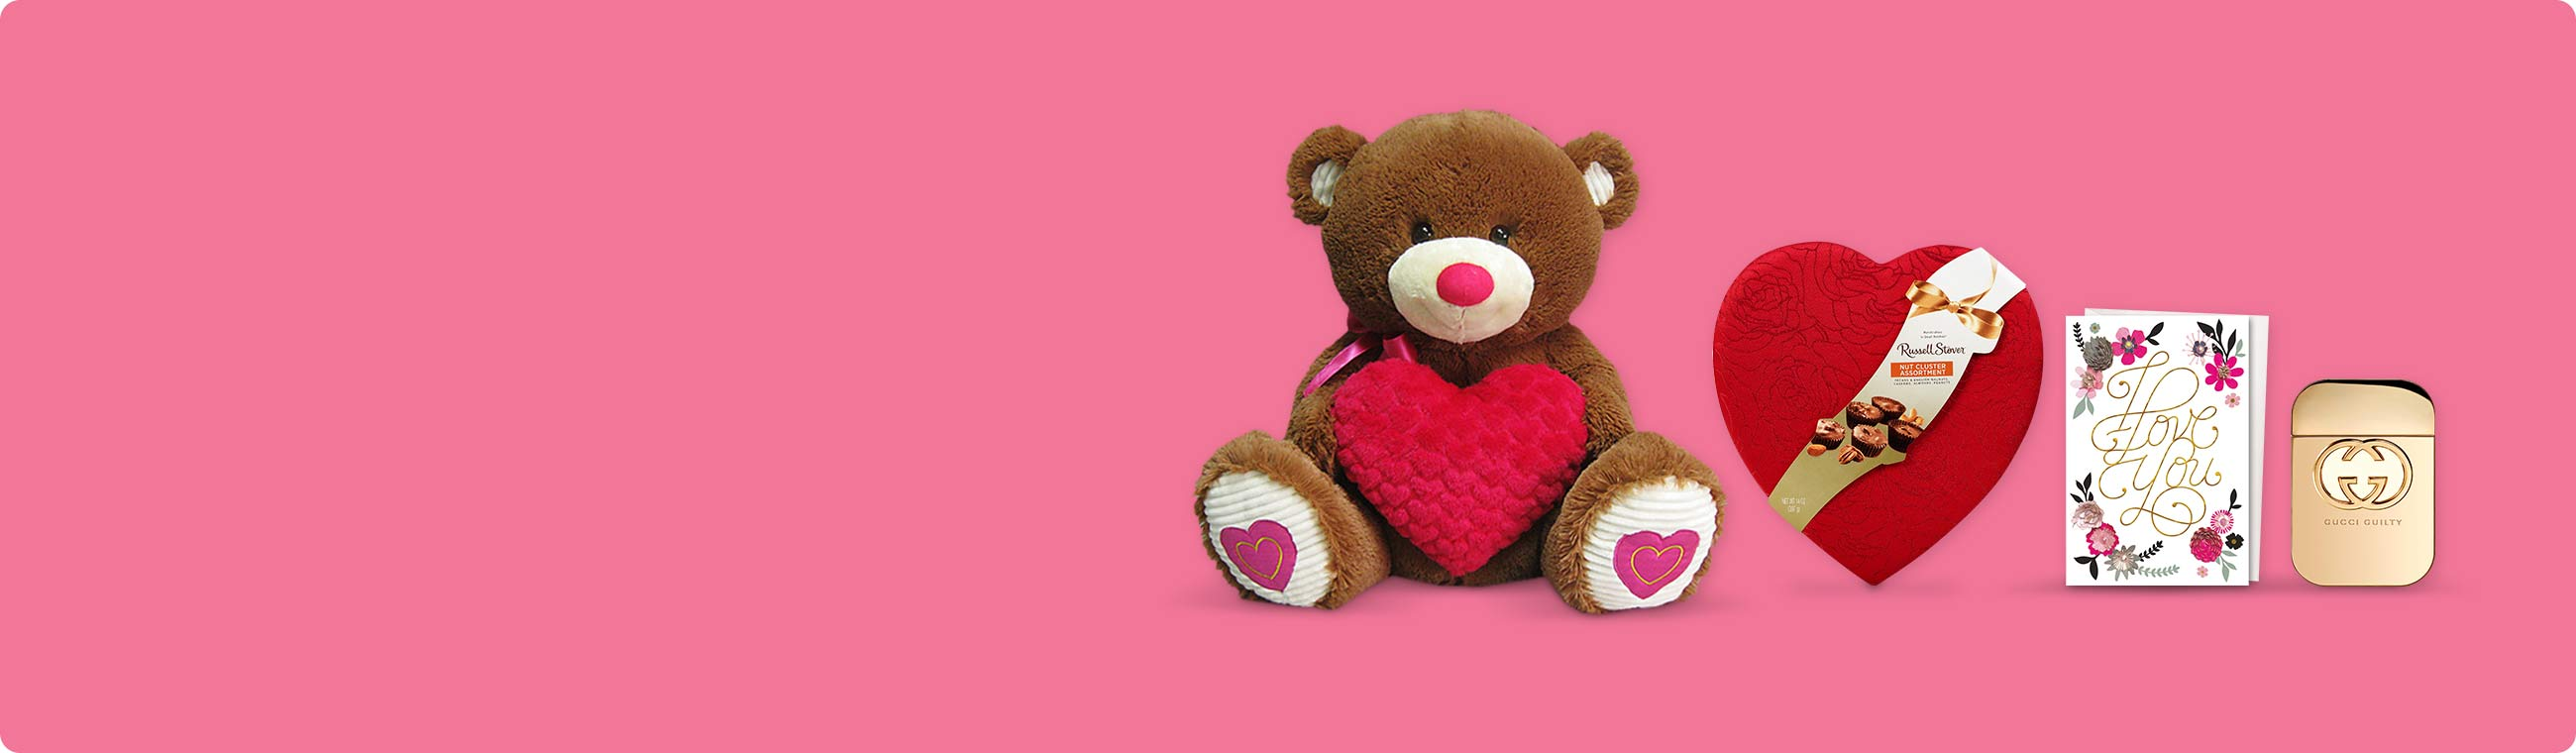 2a74caa9141 Find Valentine's Day gifts and treats for your sweeties ...